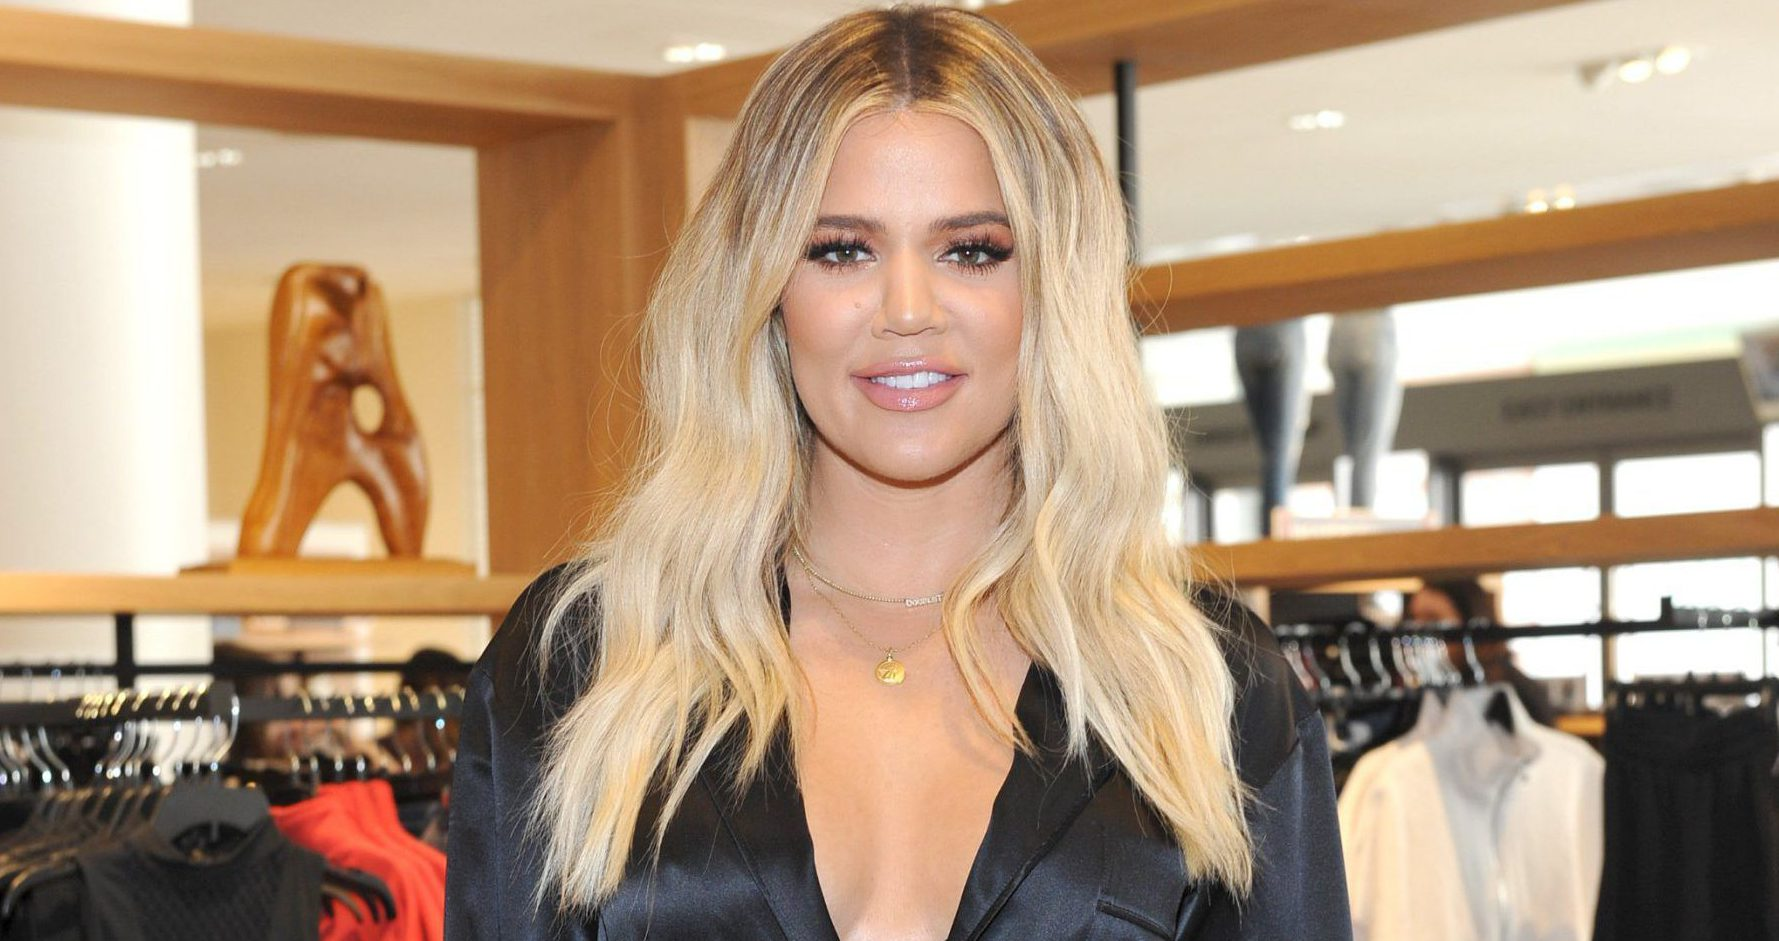 Khloe Kardashian thinks those persistent plastic surgery rumours are a 'compliment'